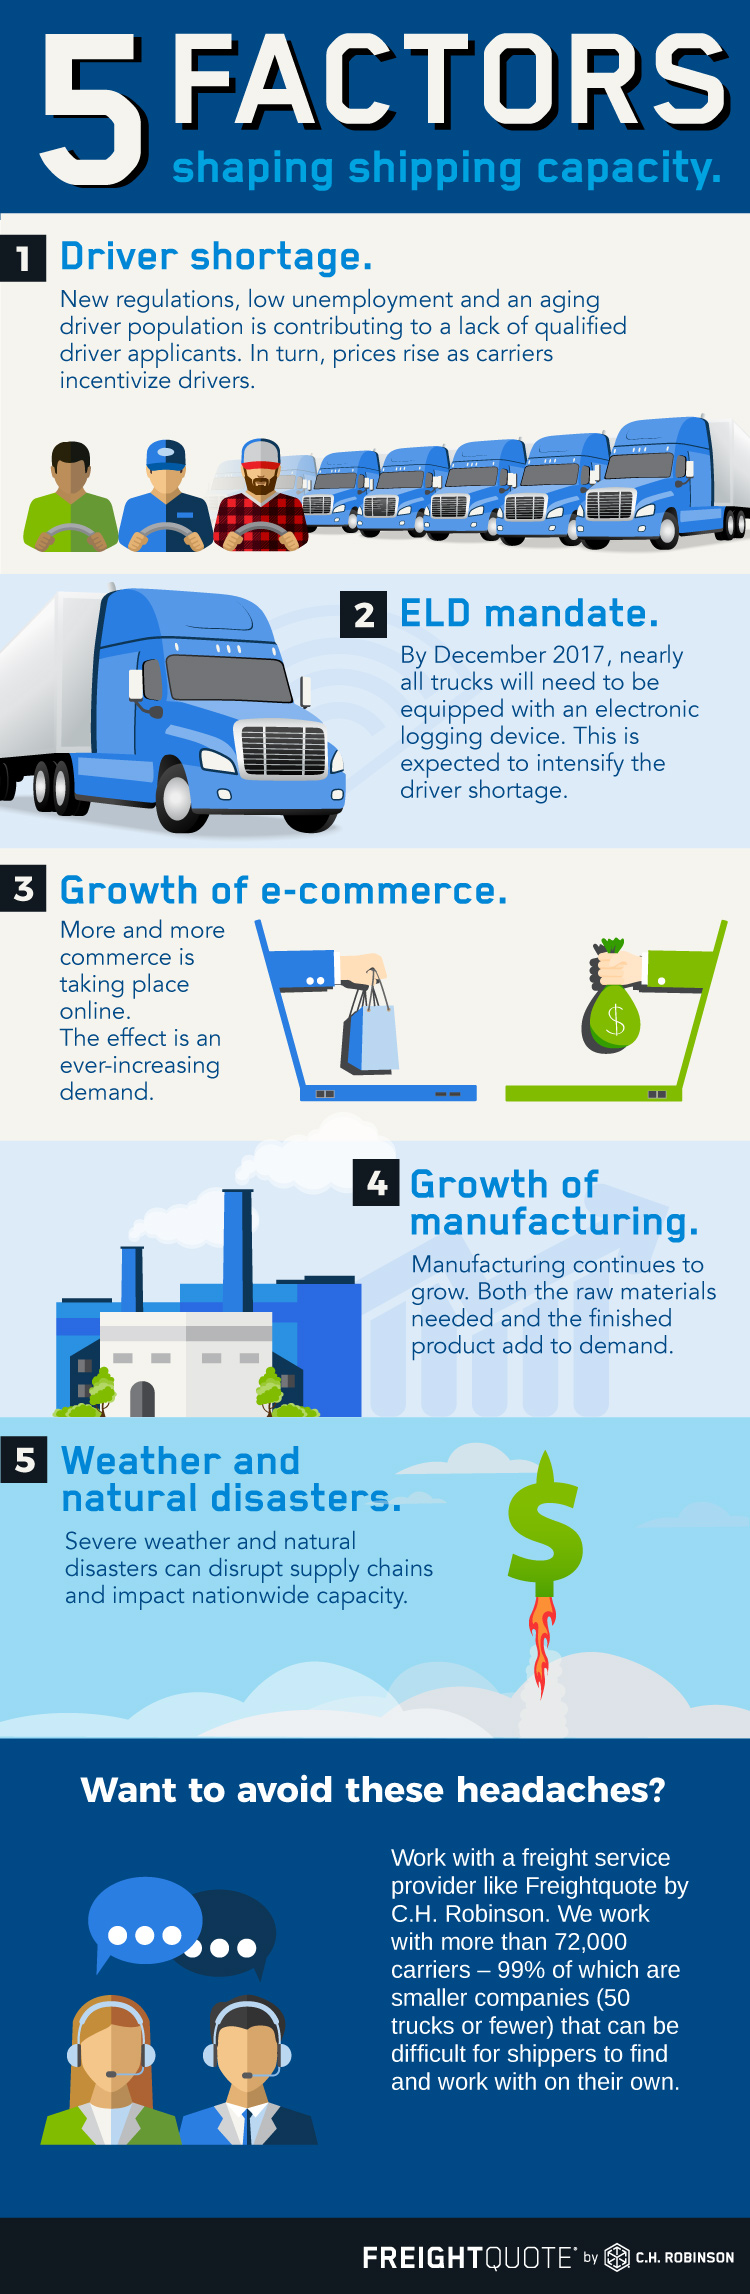 5 freight factors shaping shipping capacity infographic